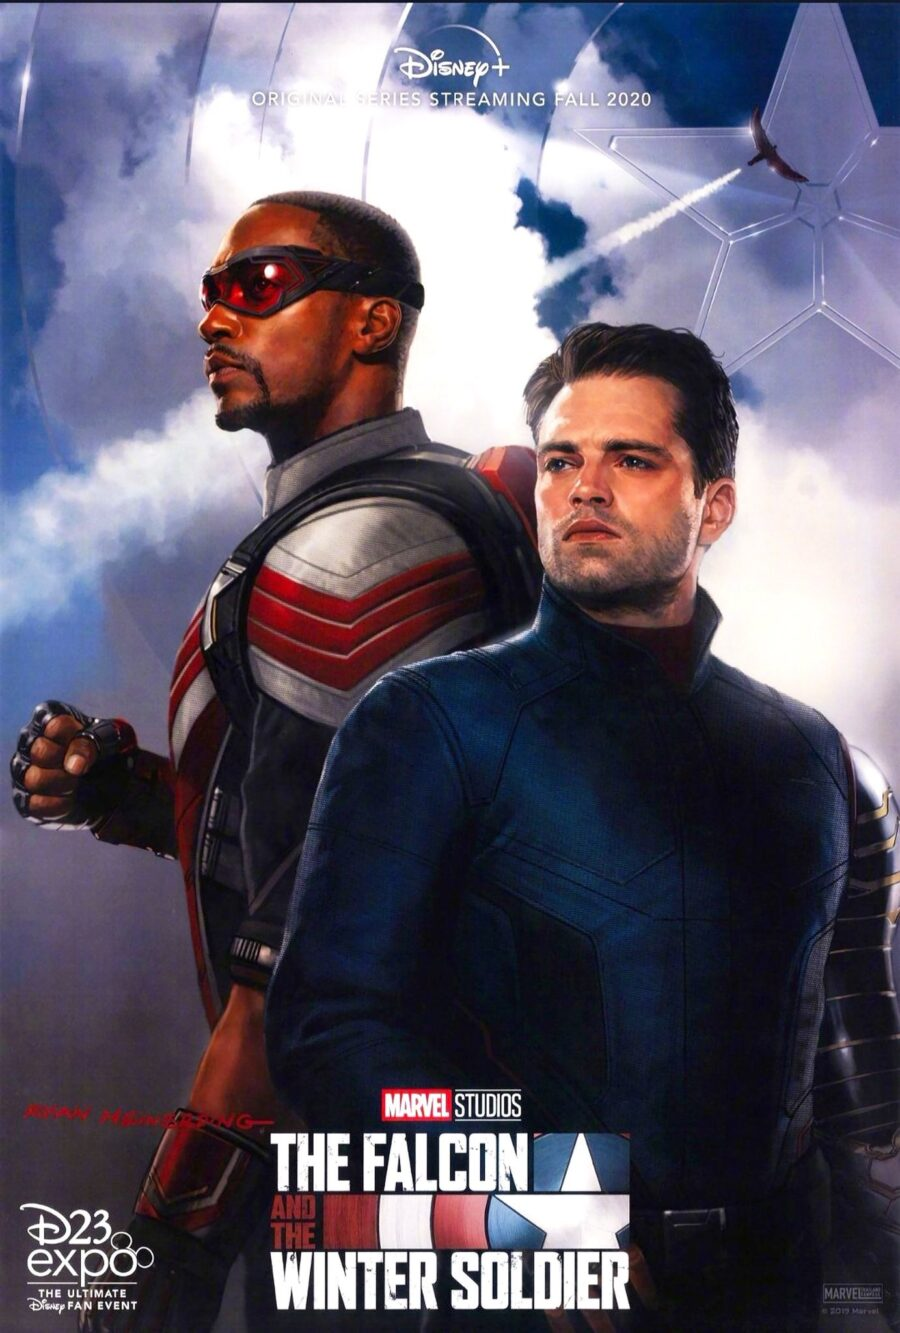 Falcon and the Winter Soldier poster